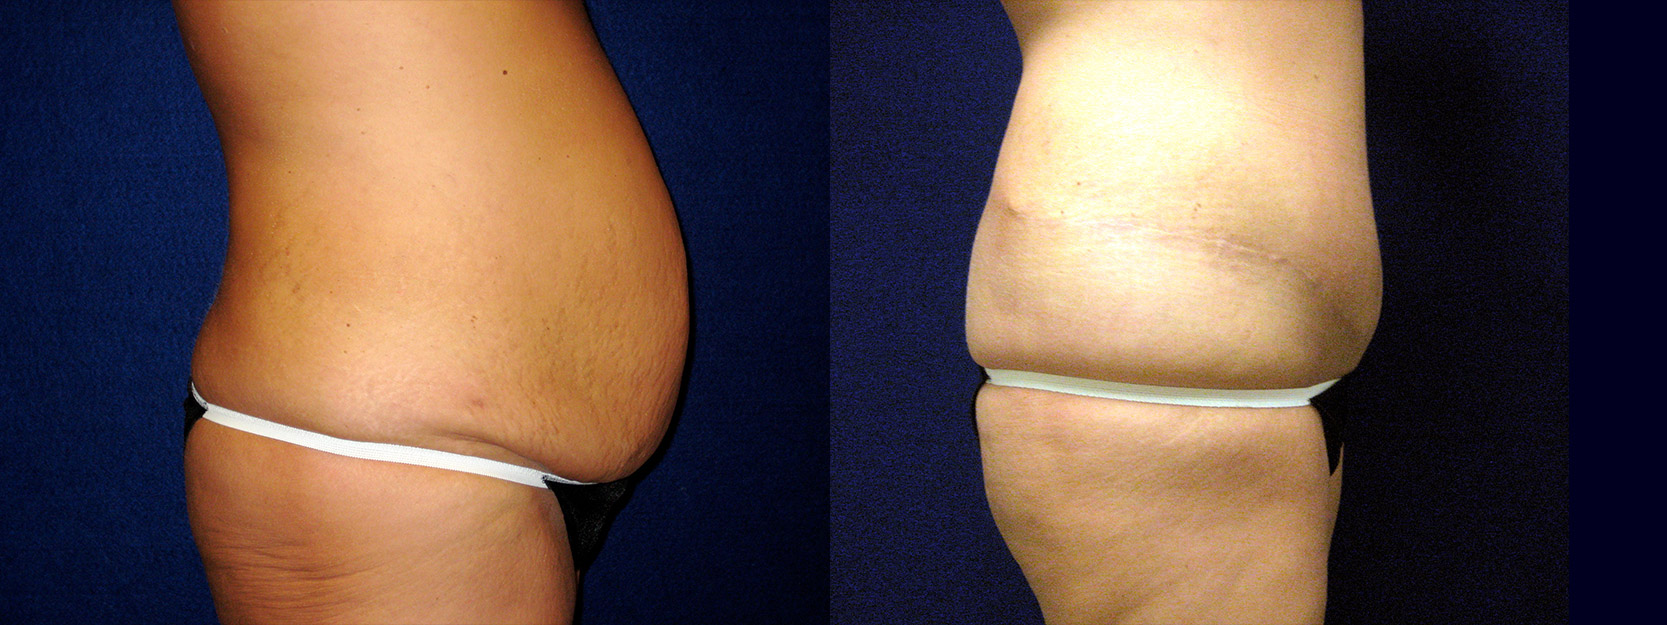 Right Profile View - Circumferential Abdominoplasty After Massive Weight Loss